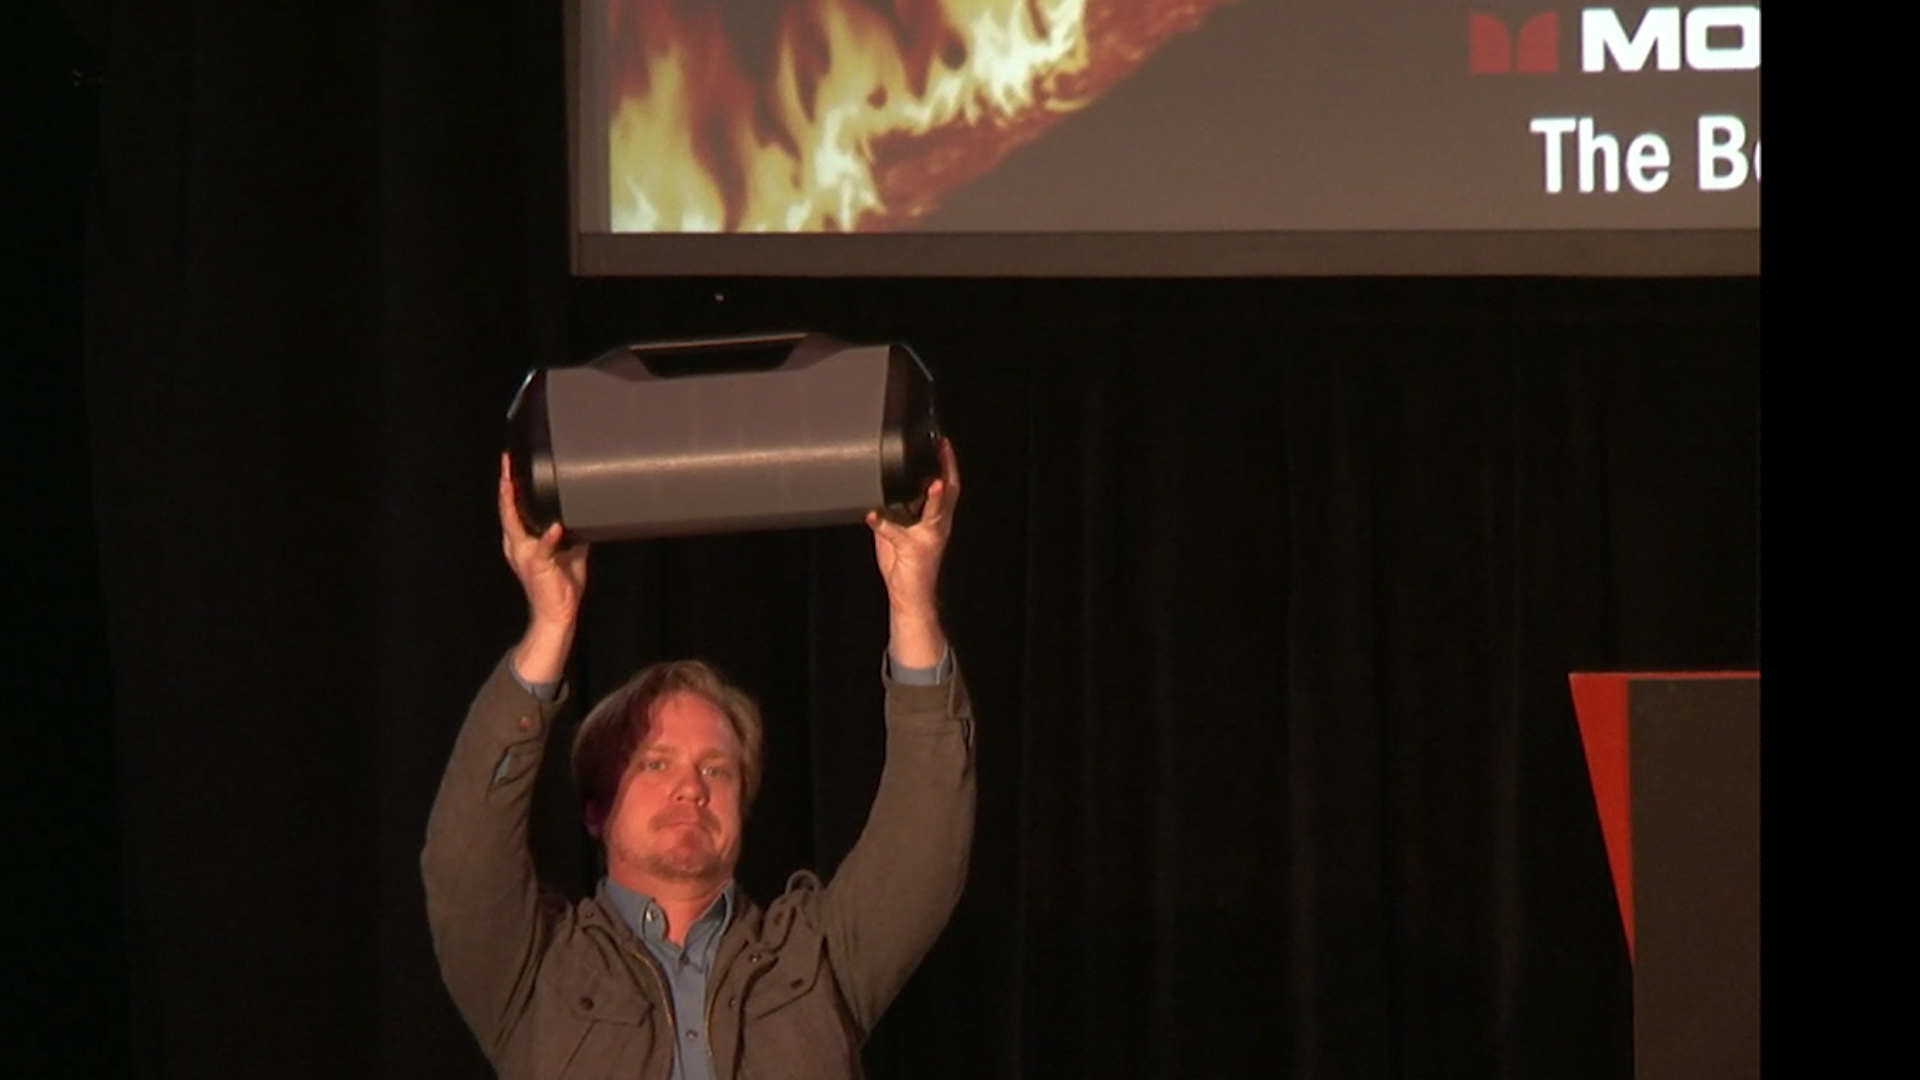 Video: Monster wants to reinvent the boom box